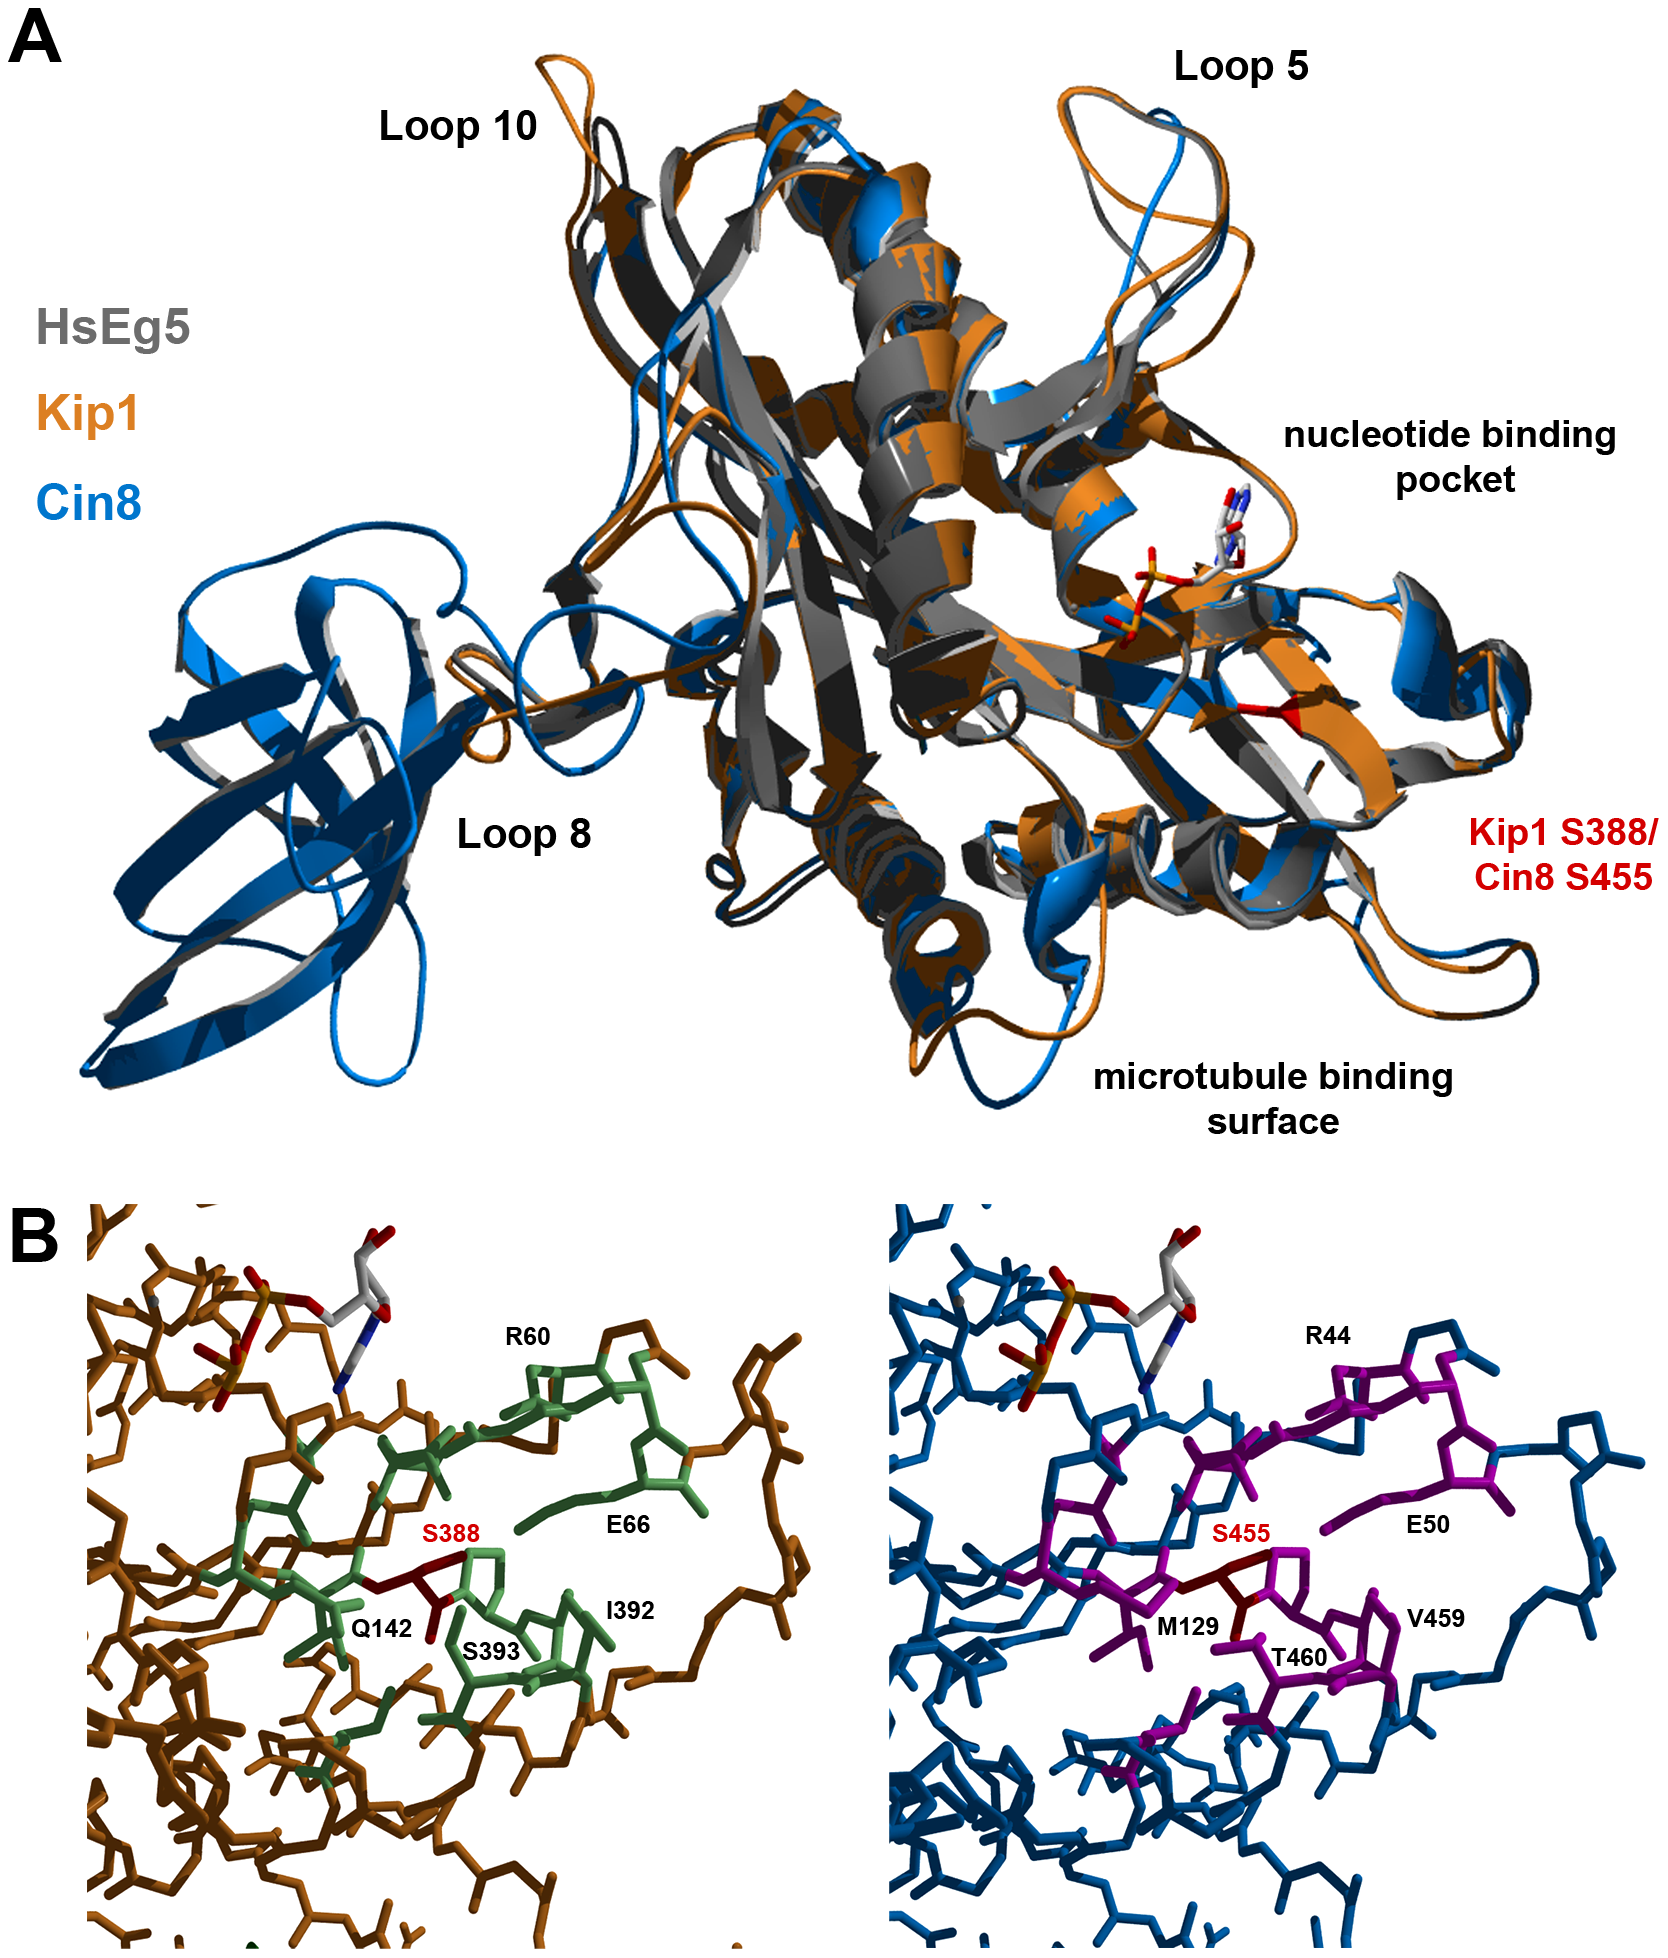 Homology models of Kip1 and Cin8 motor domains bound to MgADP.